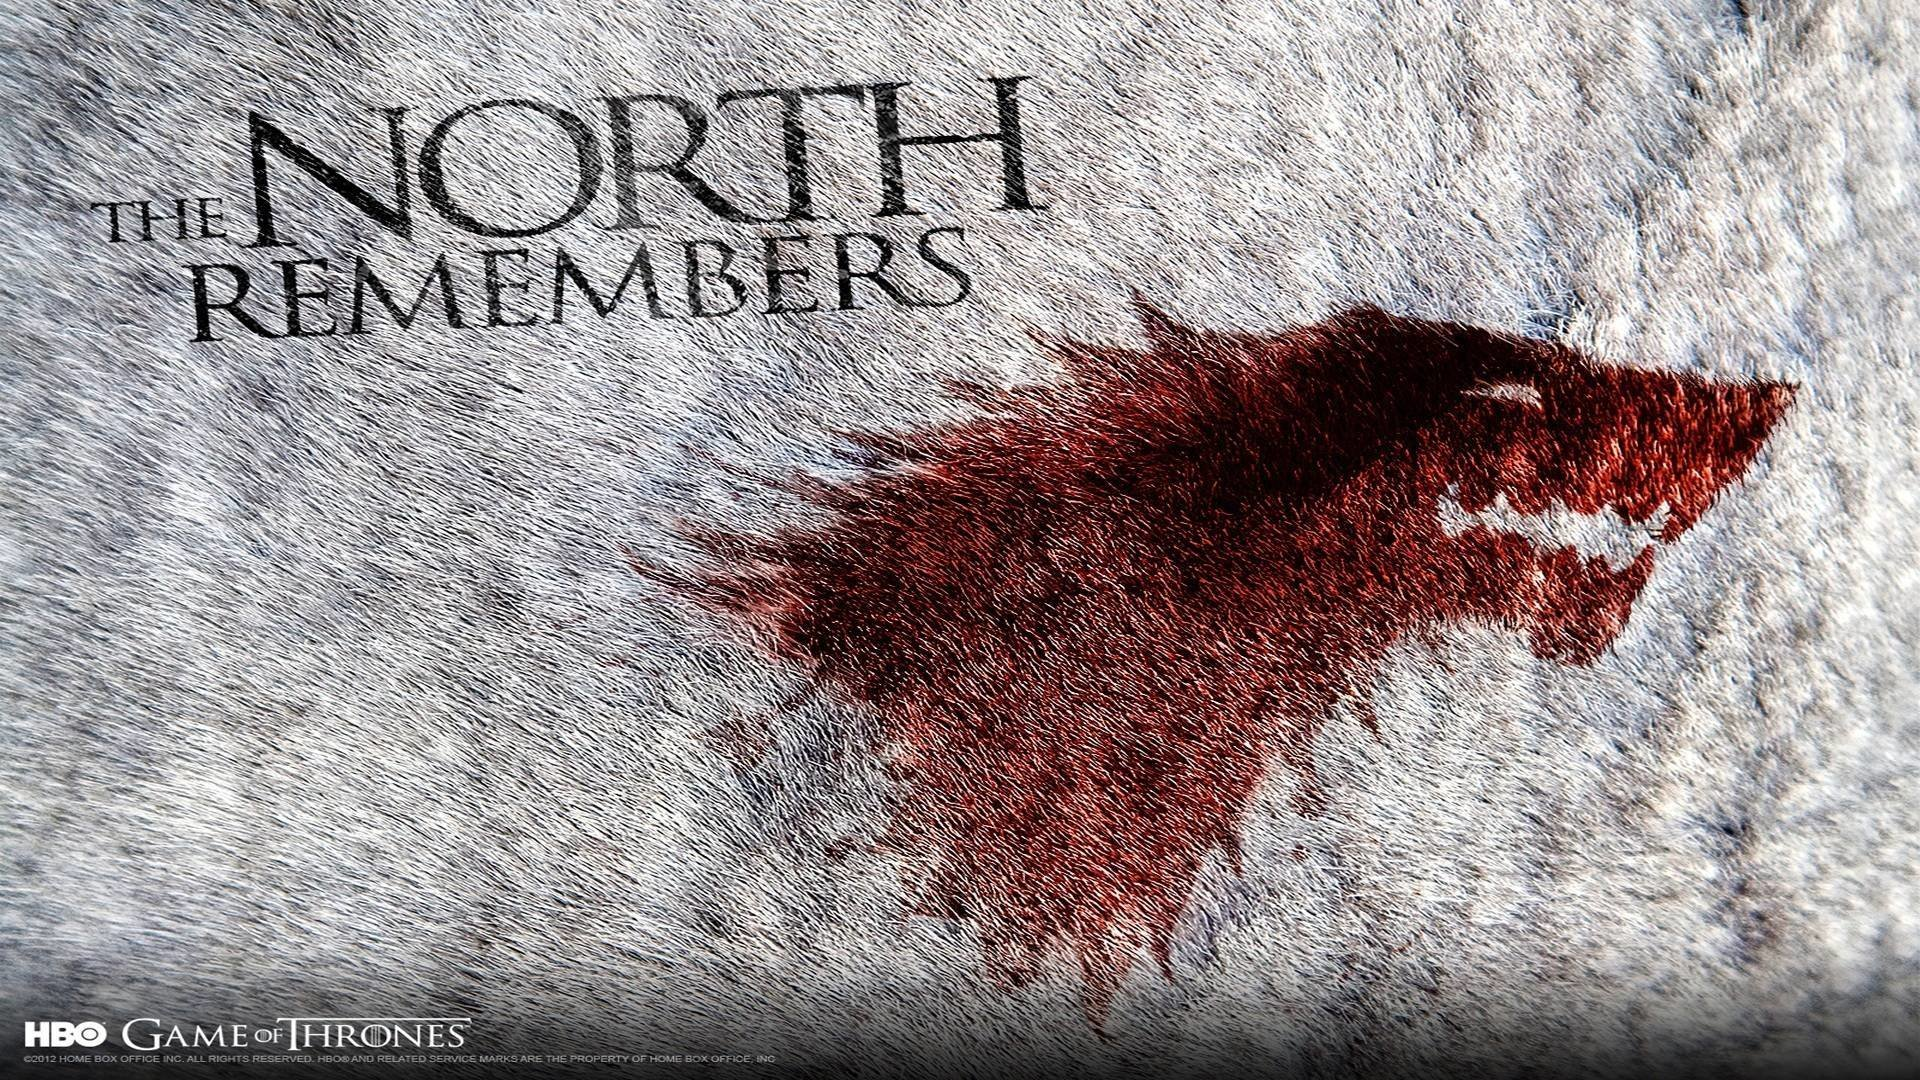 Awesome Game Of Thrones Free Wallpaper Id - Game Of Thrones Wallpaper The North Remembers - HD Wallpaper